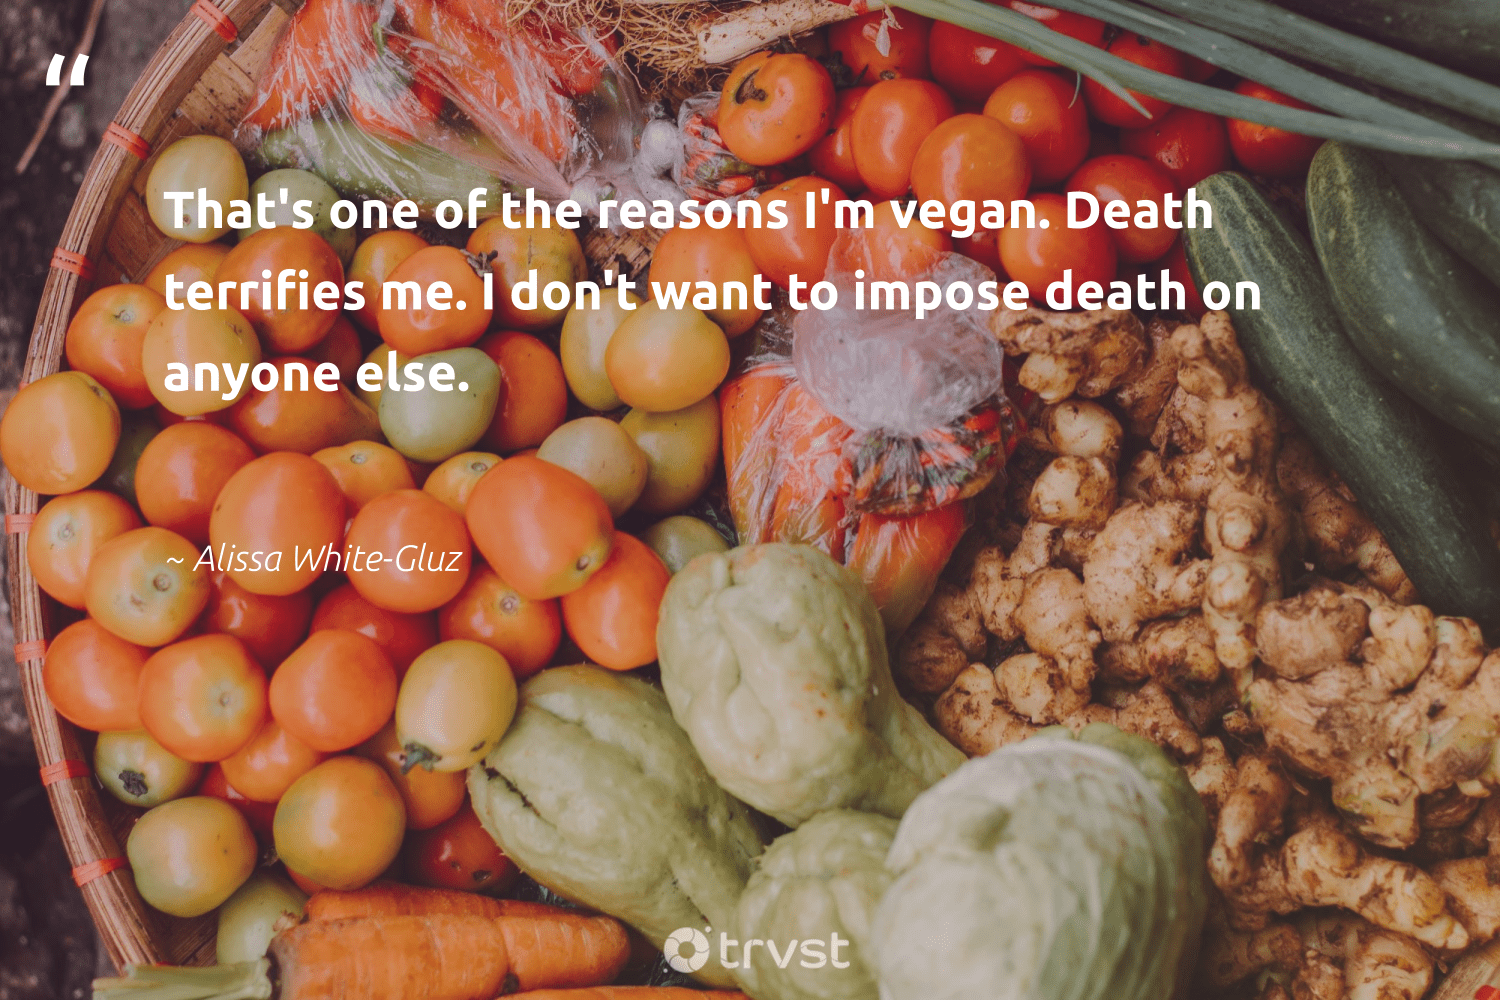 """That's one of the reasons I'm vegan. Death terrifies me. I don't want to impose death on anyone else.""  - Alissa White-Gluz #trvst #quotes #vegan #veganlife #green #fashion #changetheworld #vegetarian #sustainability #bethechange #socialimpact #veggie"